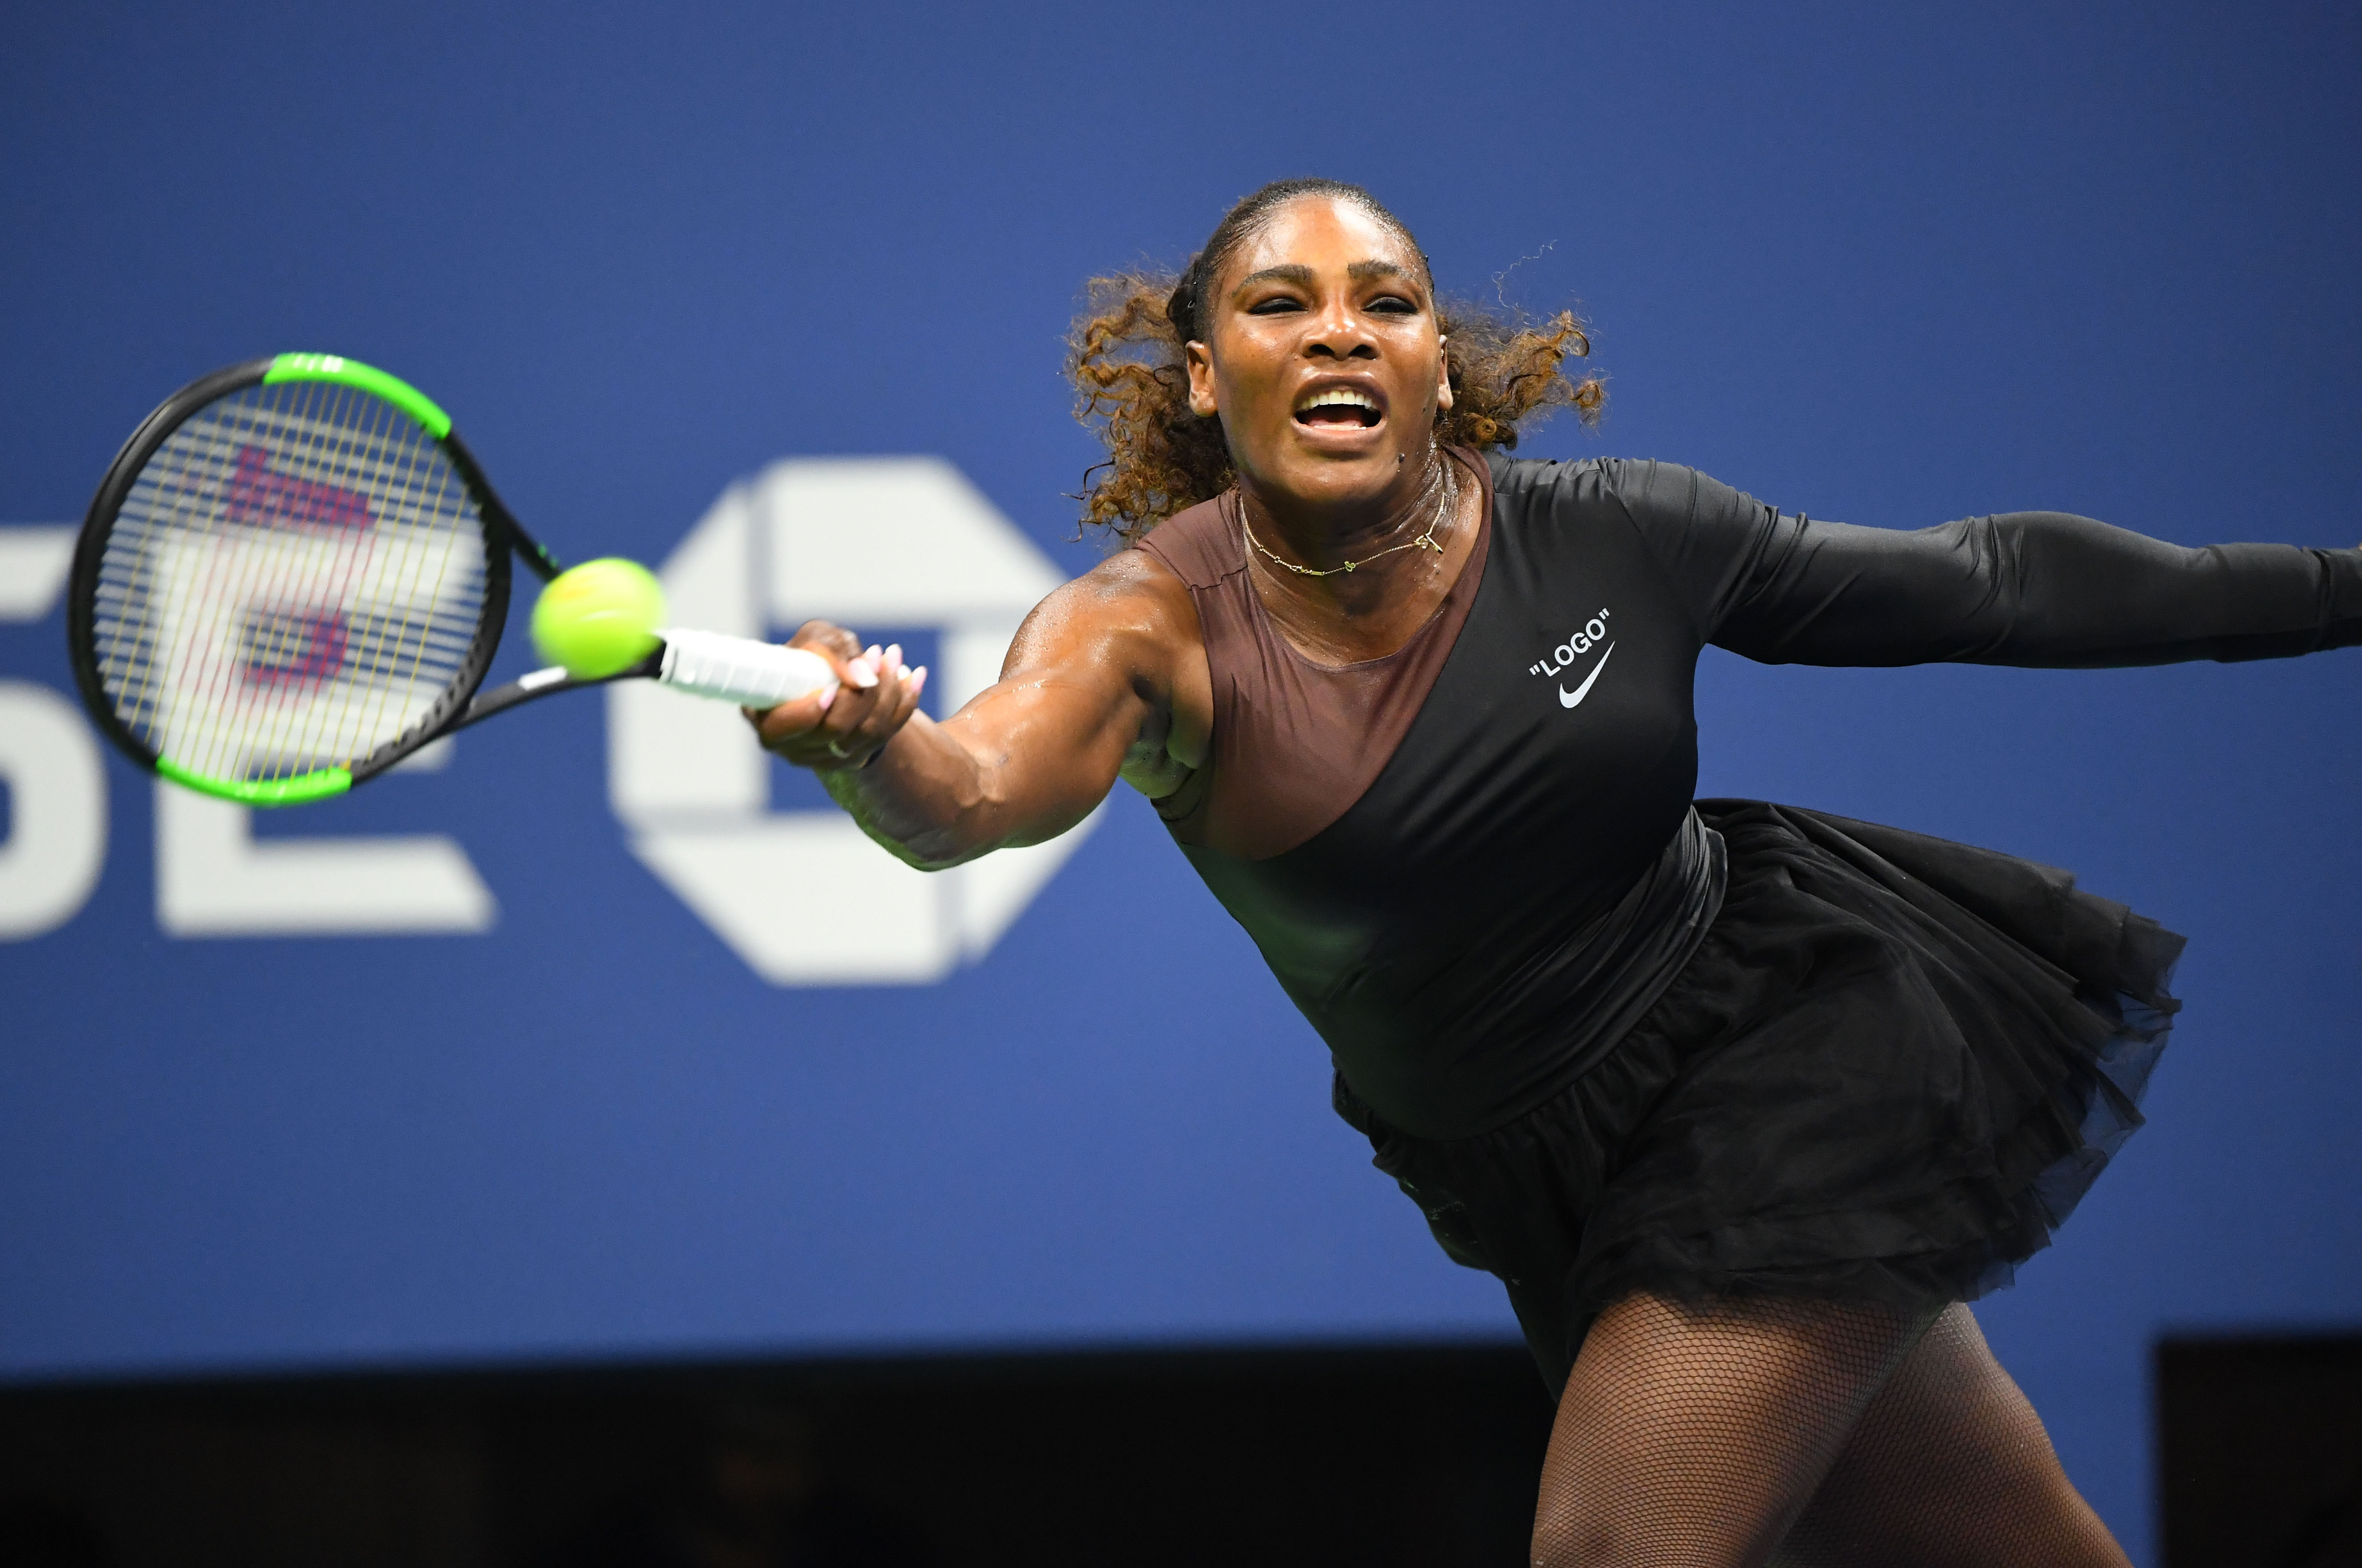 Serena Williams on day one of the 2018 US Open.